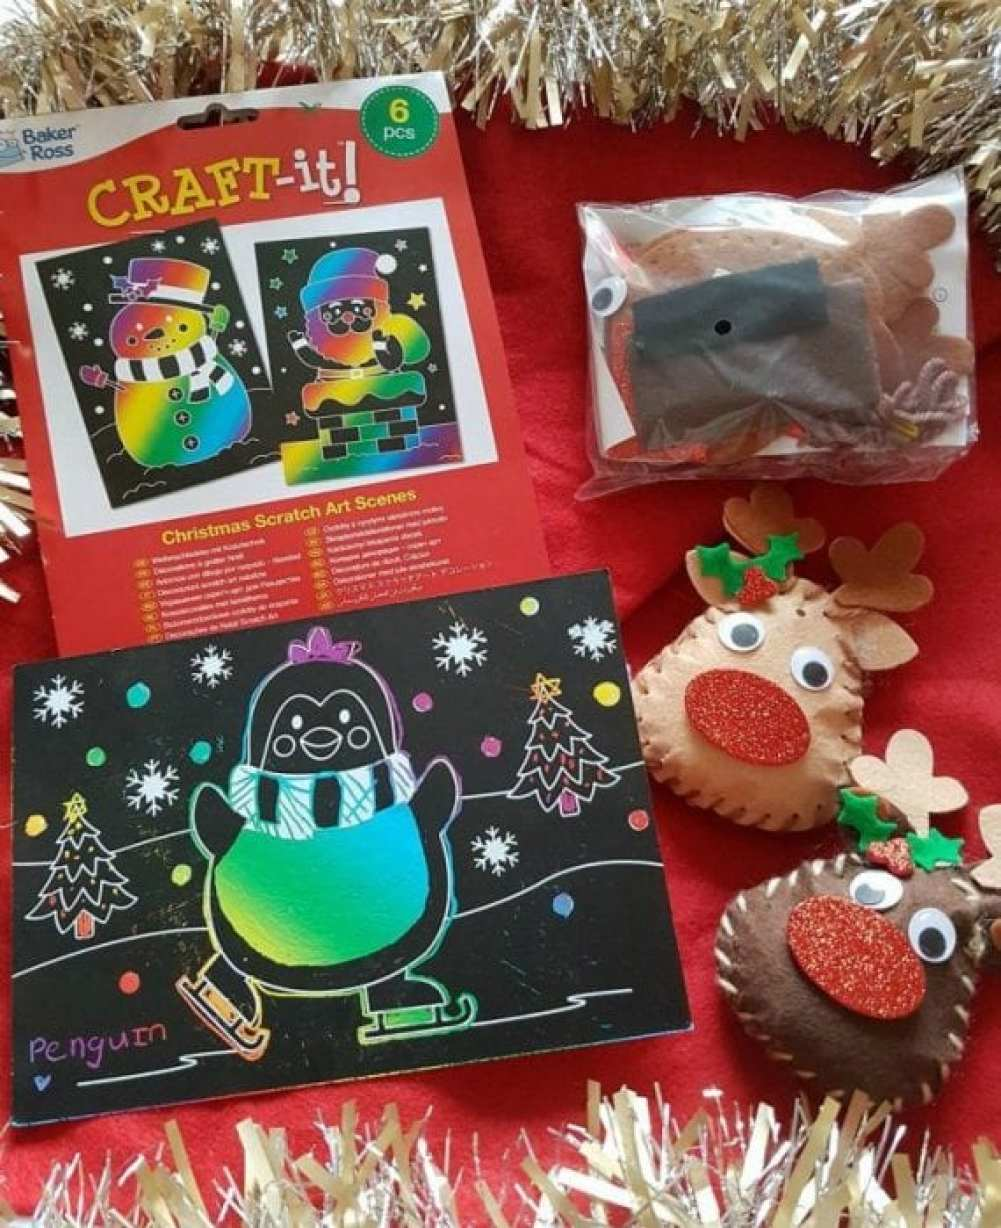 baker ross christmas crafting kits - Ross Christmas Decorations